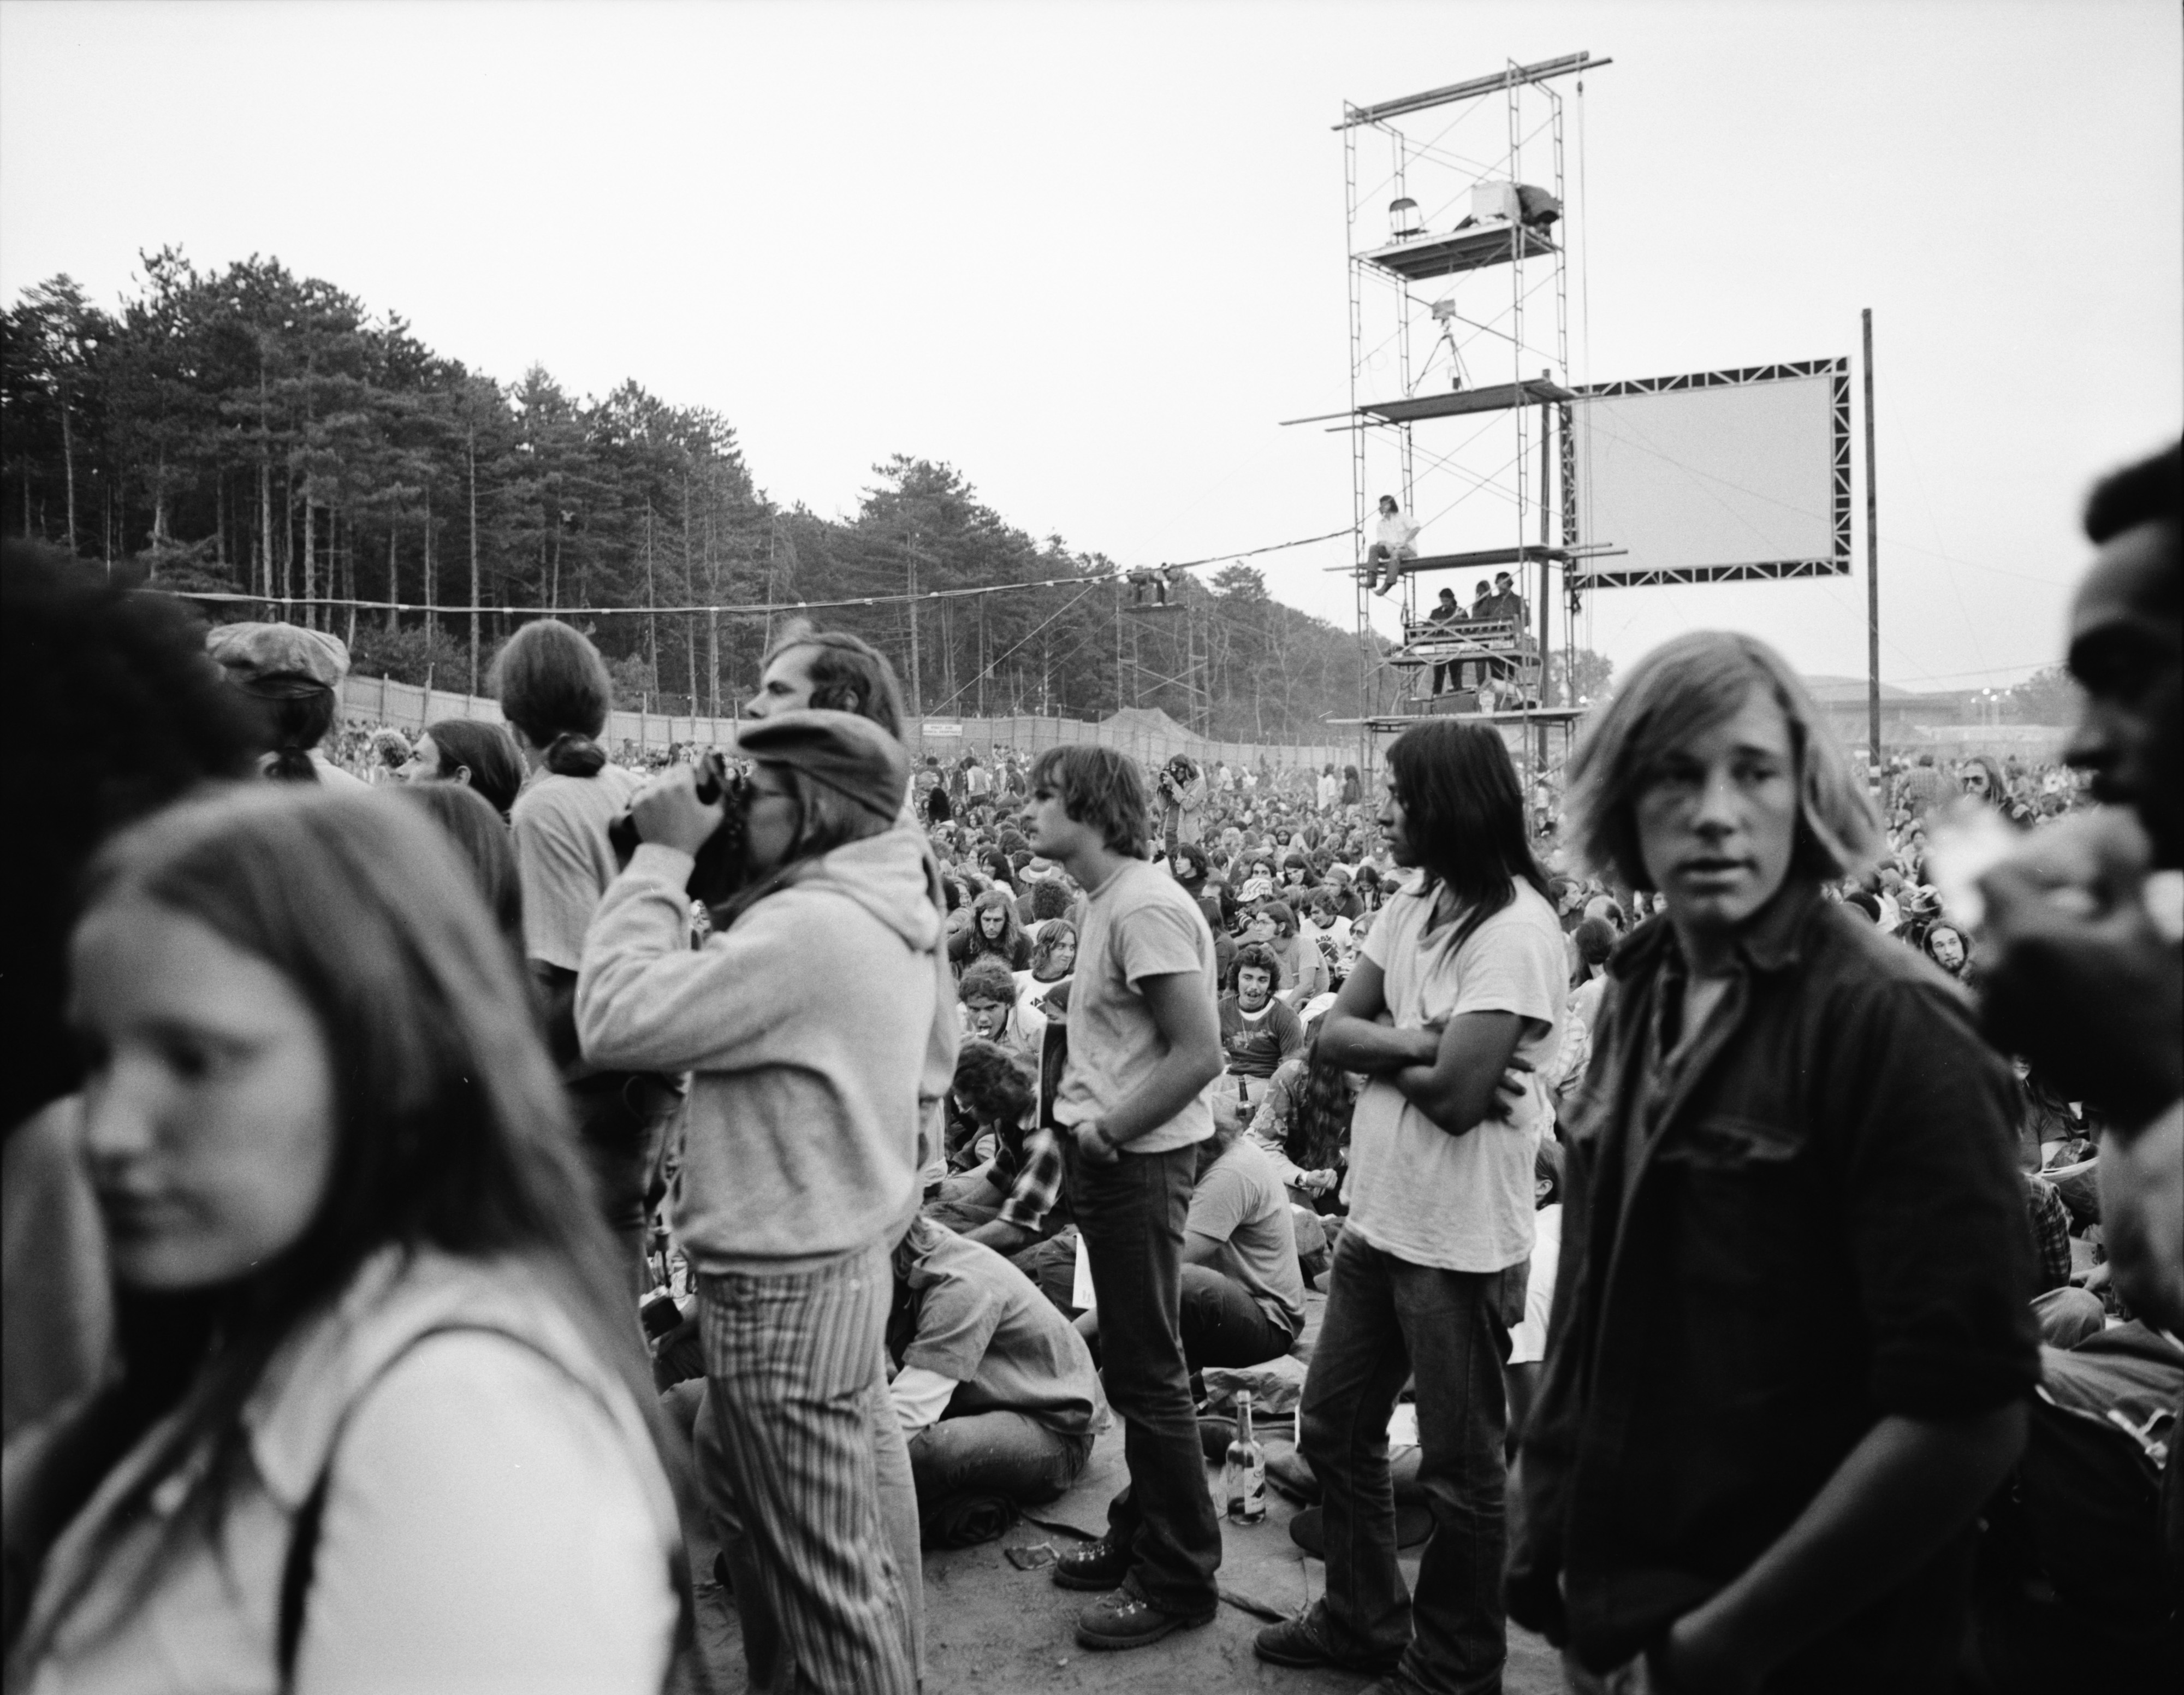 Crowd at 1973 Ann Arbor Blues and Jazz Festival image